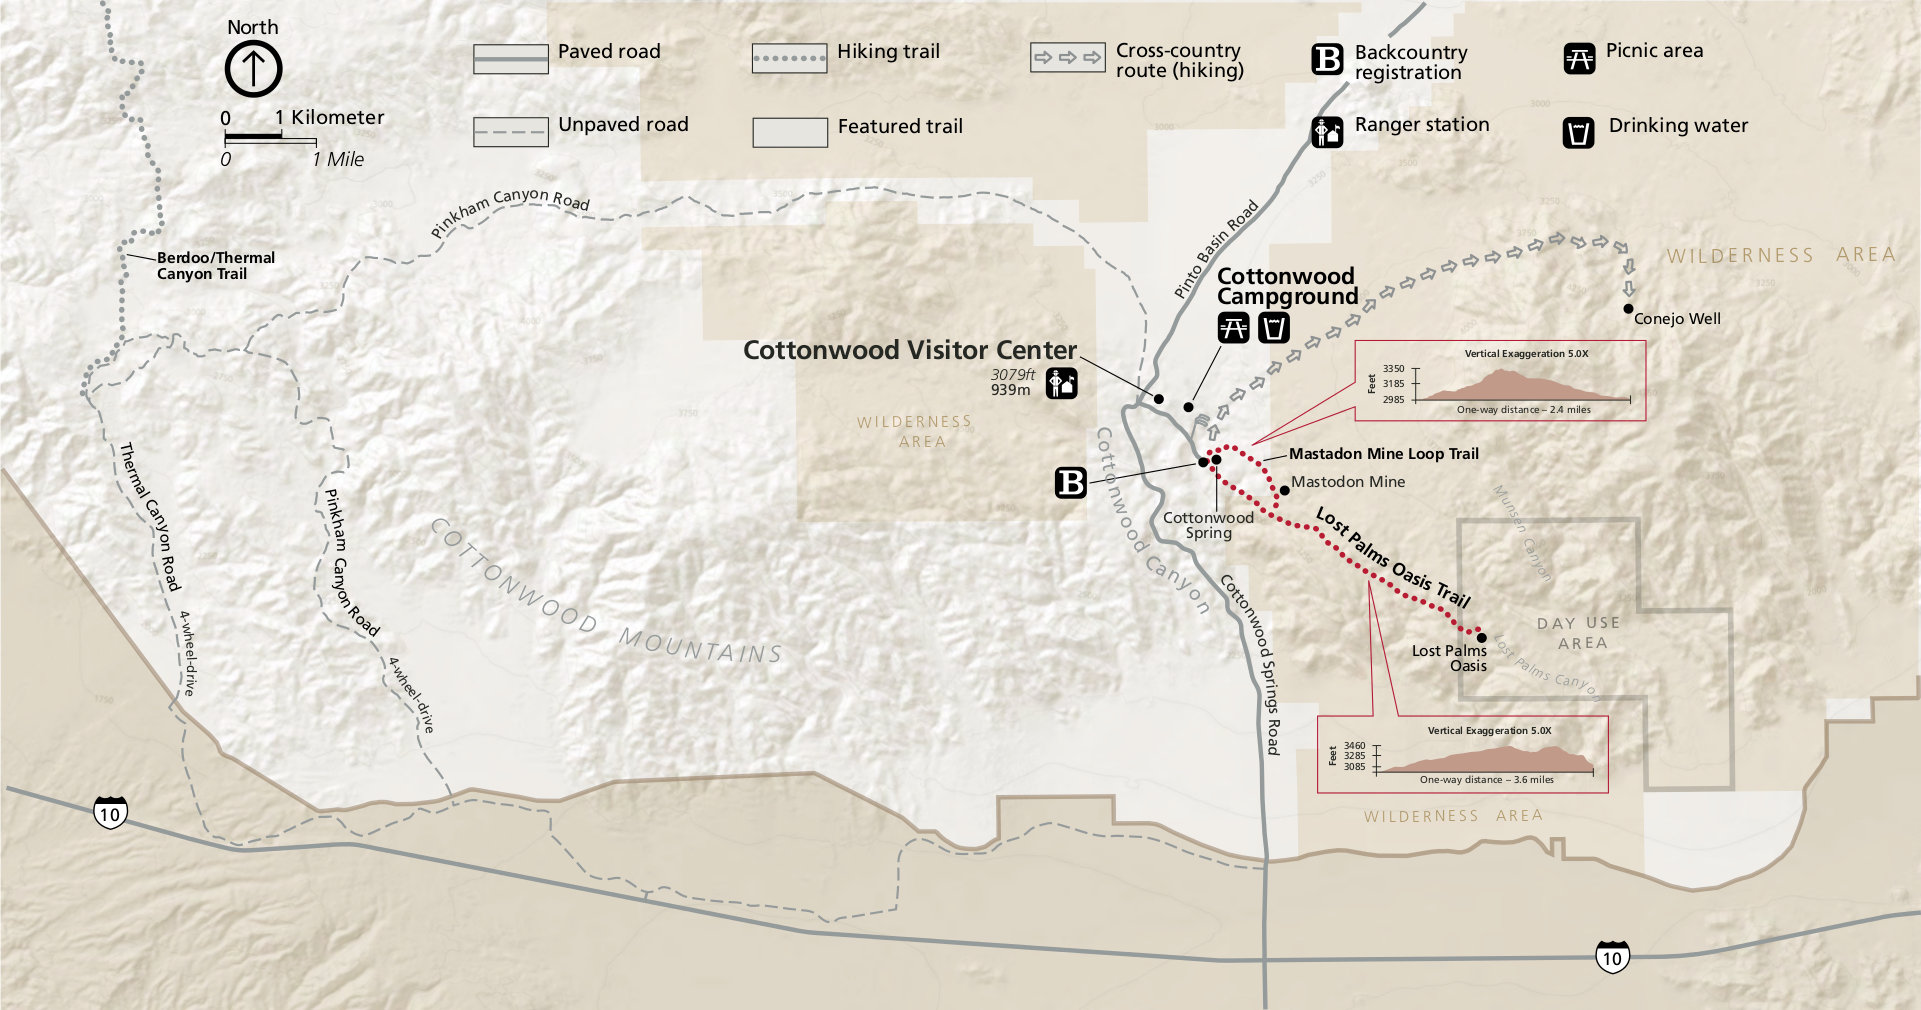 Joshua Tree Maps | NPMaps.com - just free maps, period.